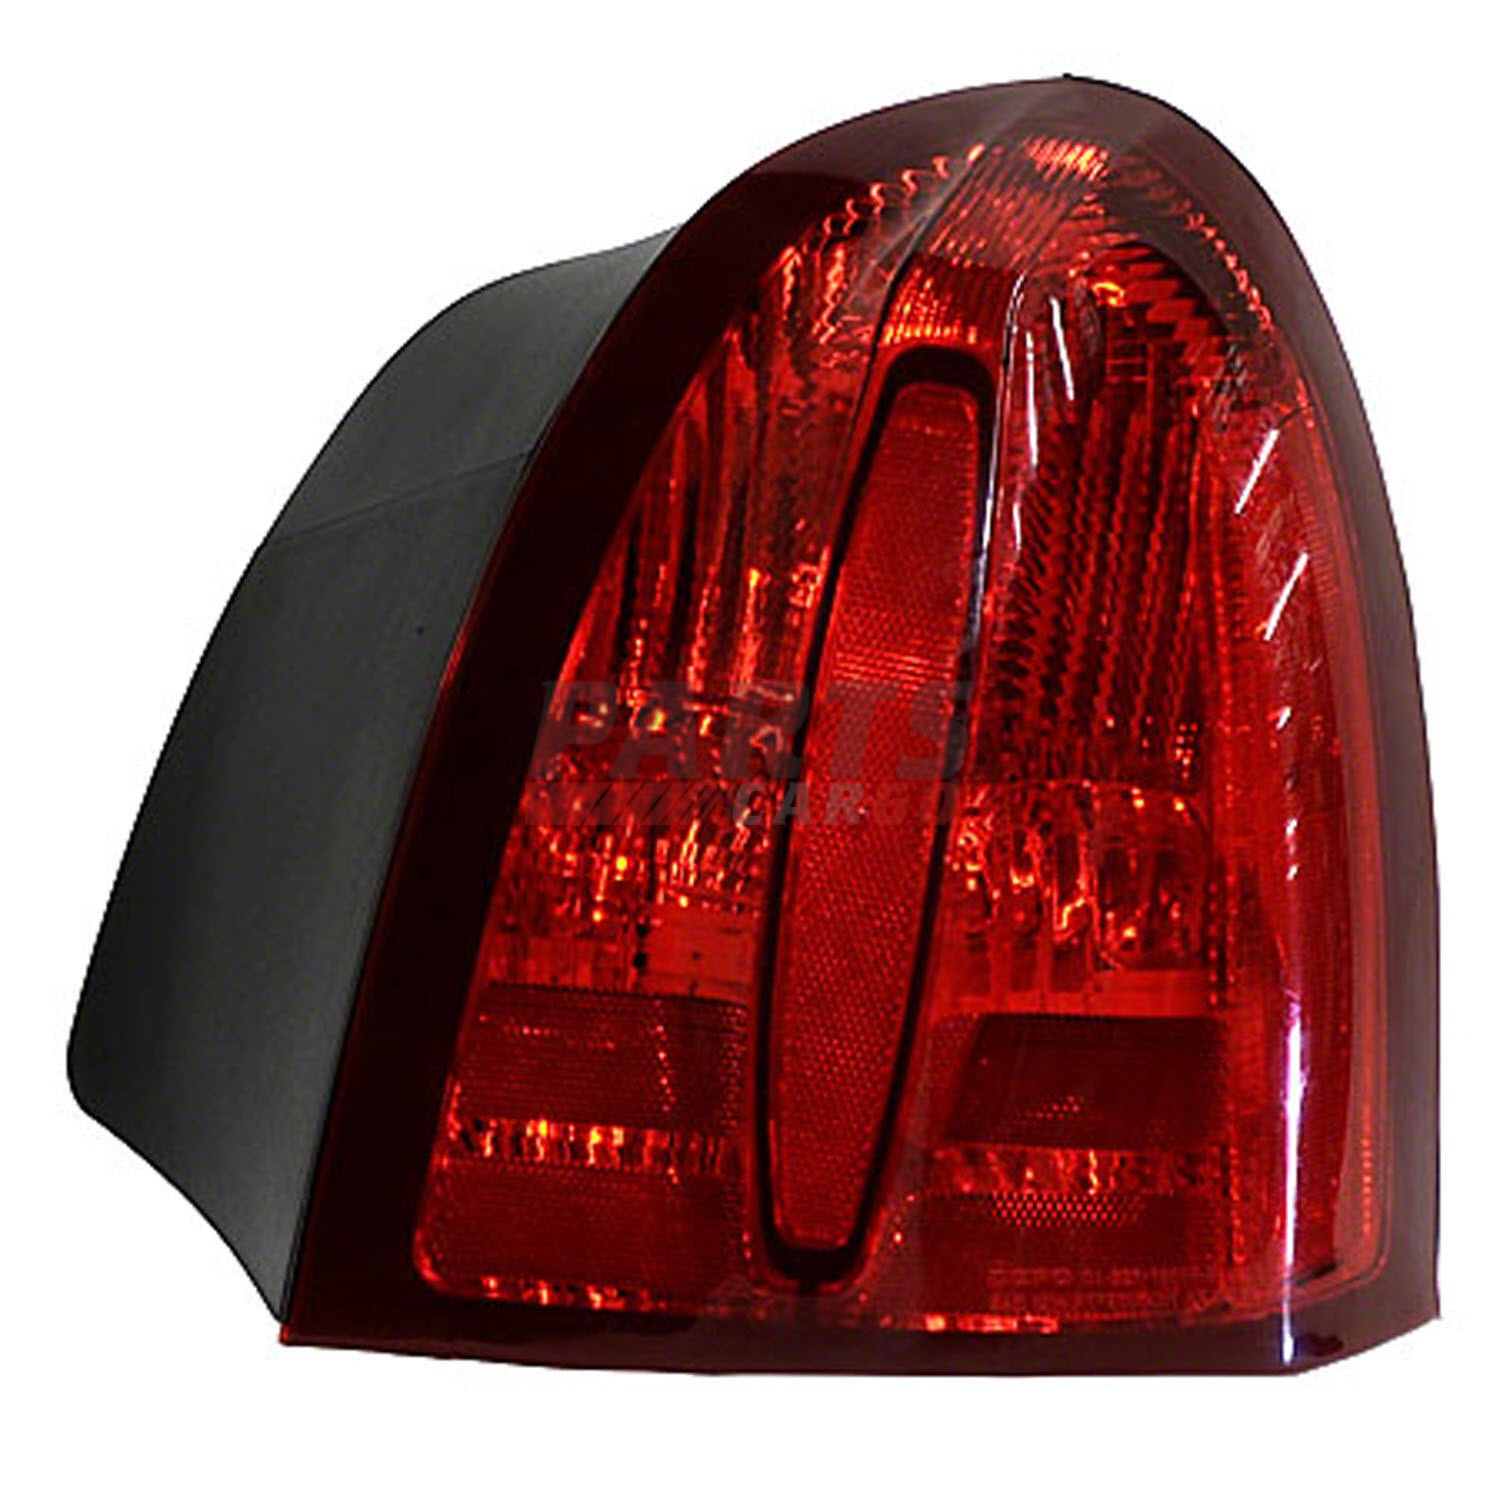 medium resolution of details about new tail light assembly right side fits 1998 2002 lincoln town car xw1z13404ba